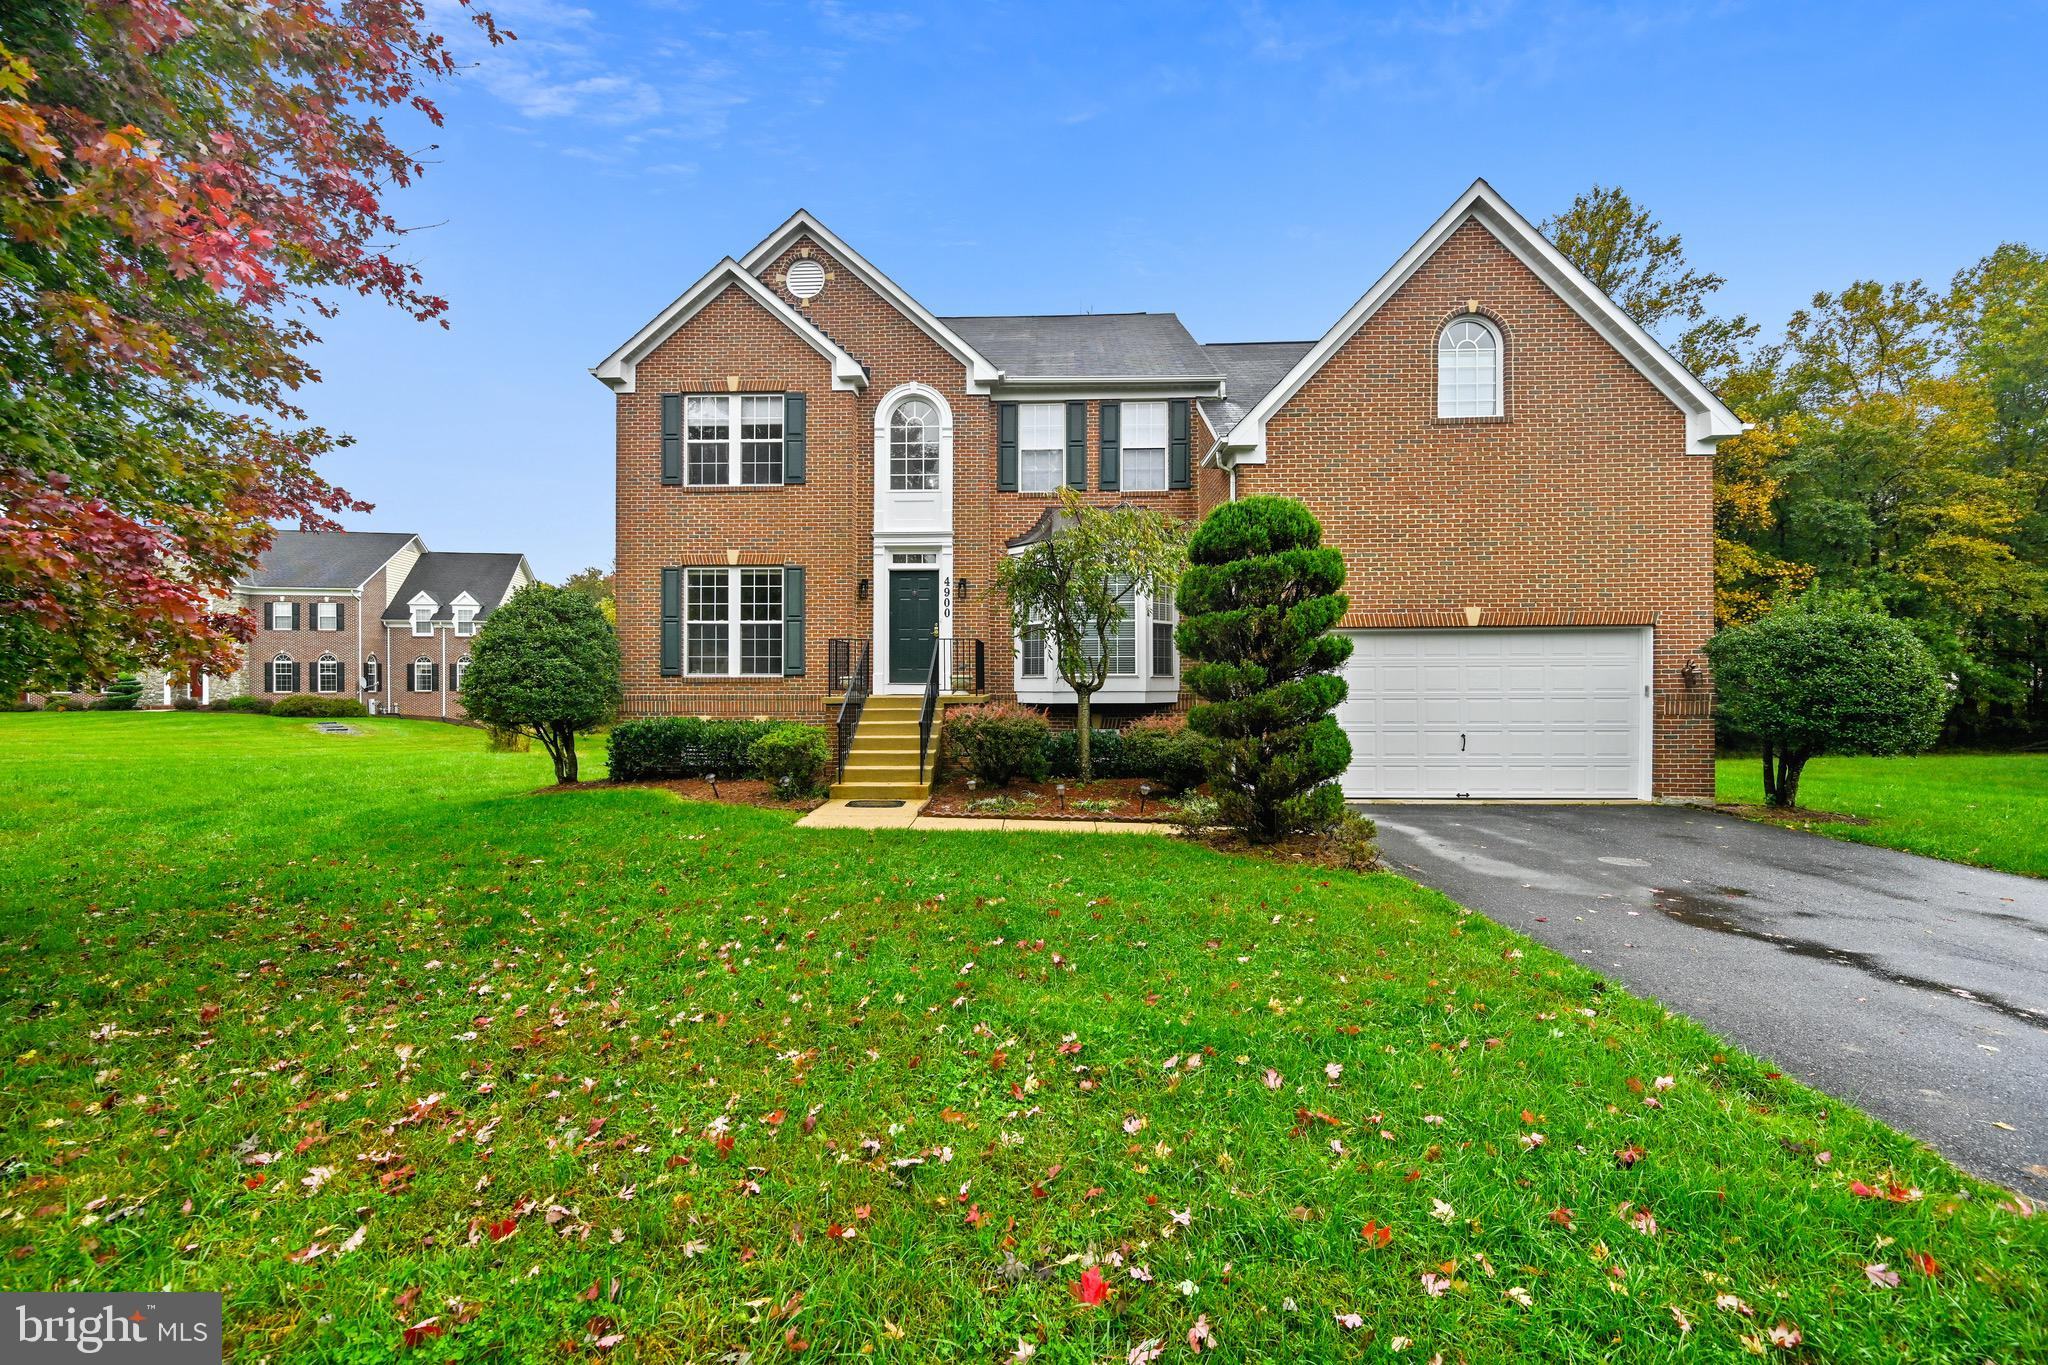 4900 Riding Ridge Court, Laurel, MD 20707